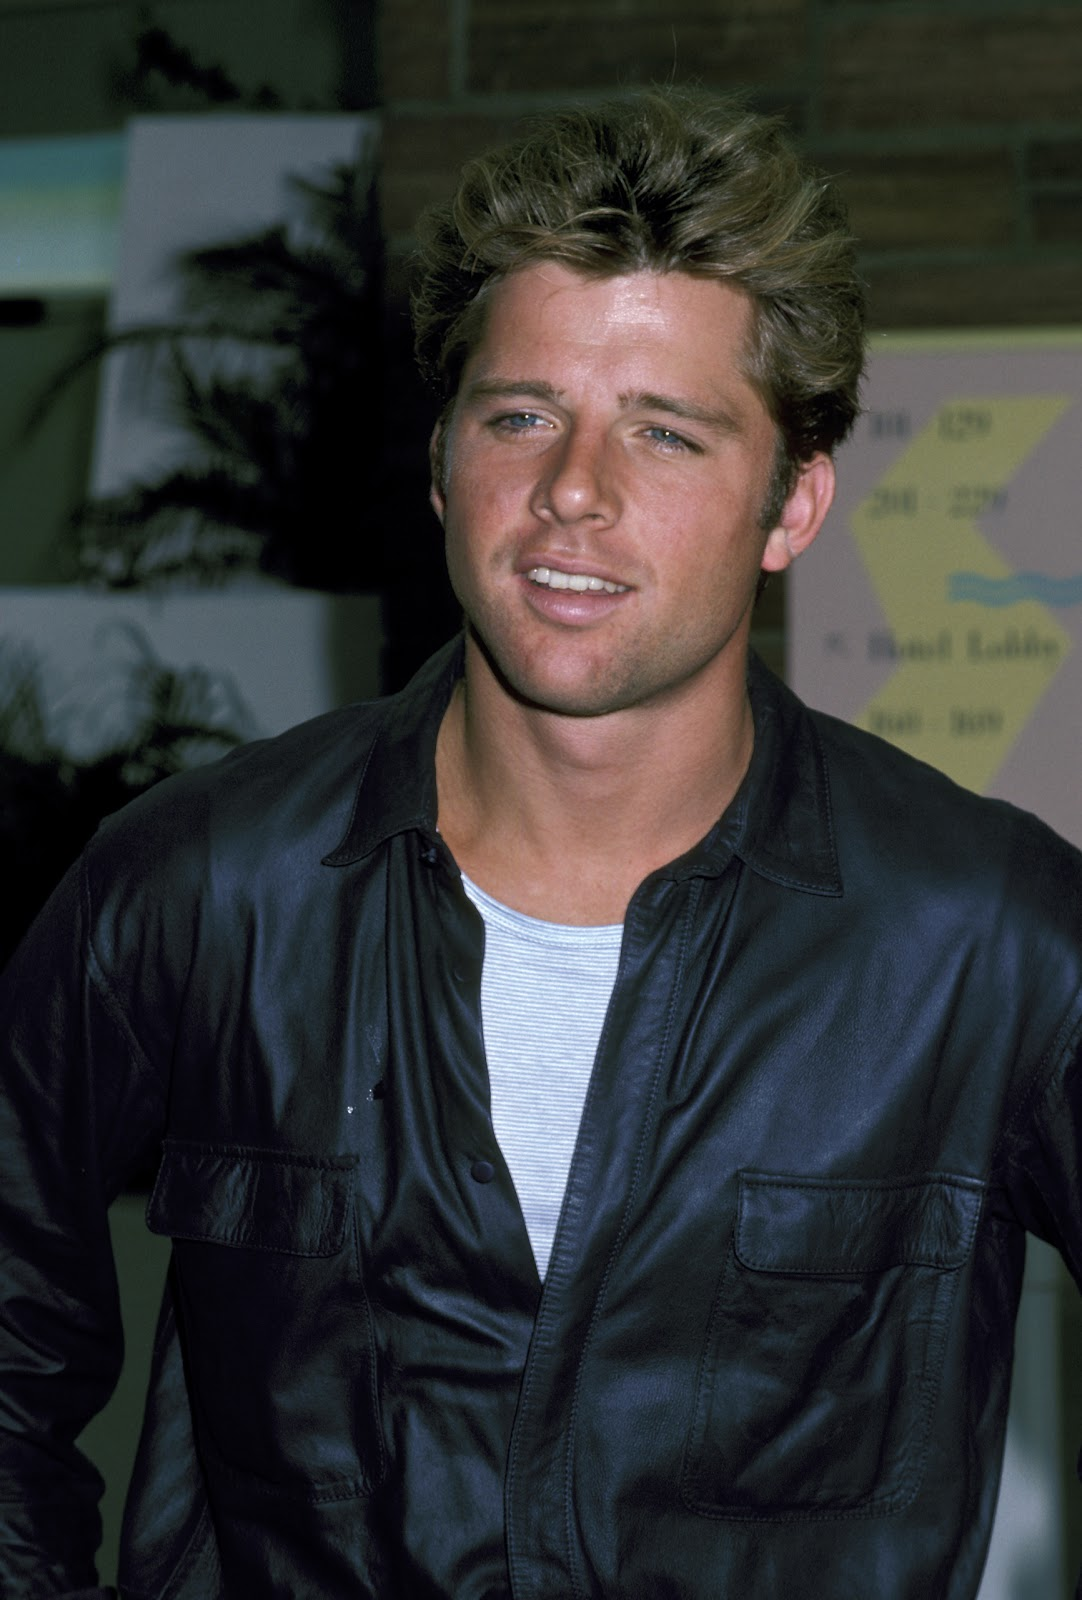 LBColby's DYNASTY Blog: Maxwell Caulfield: Then and Now